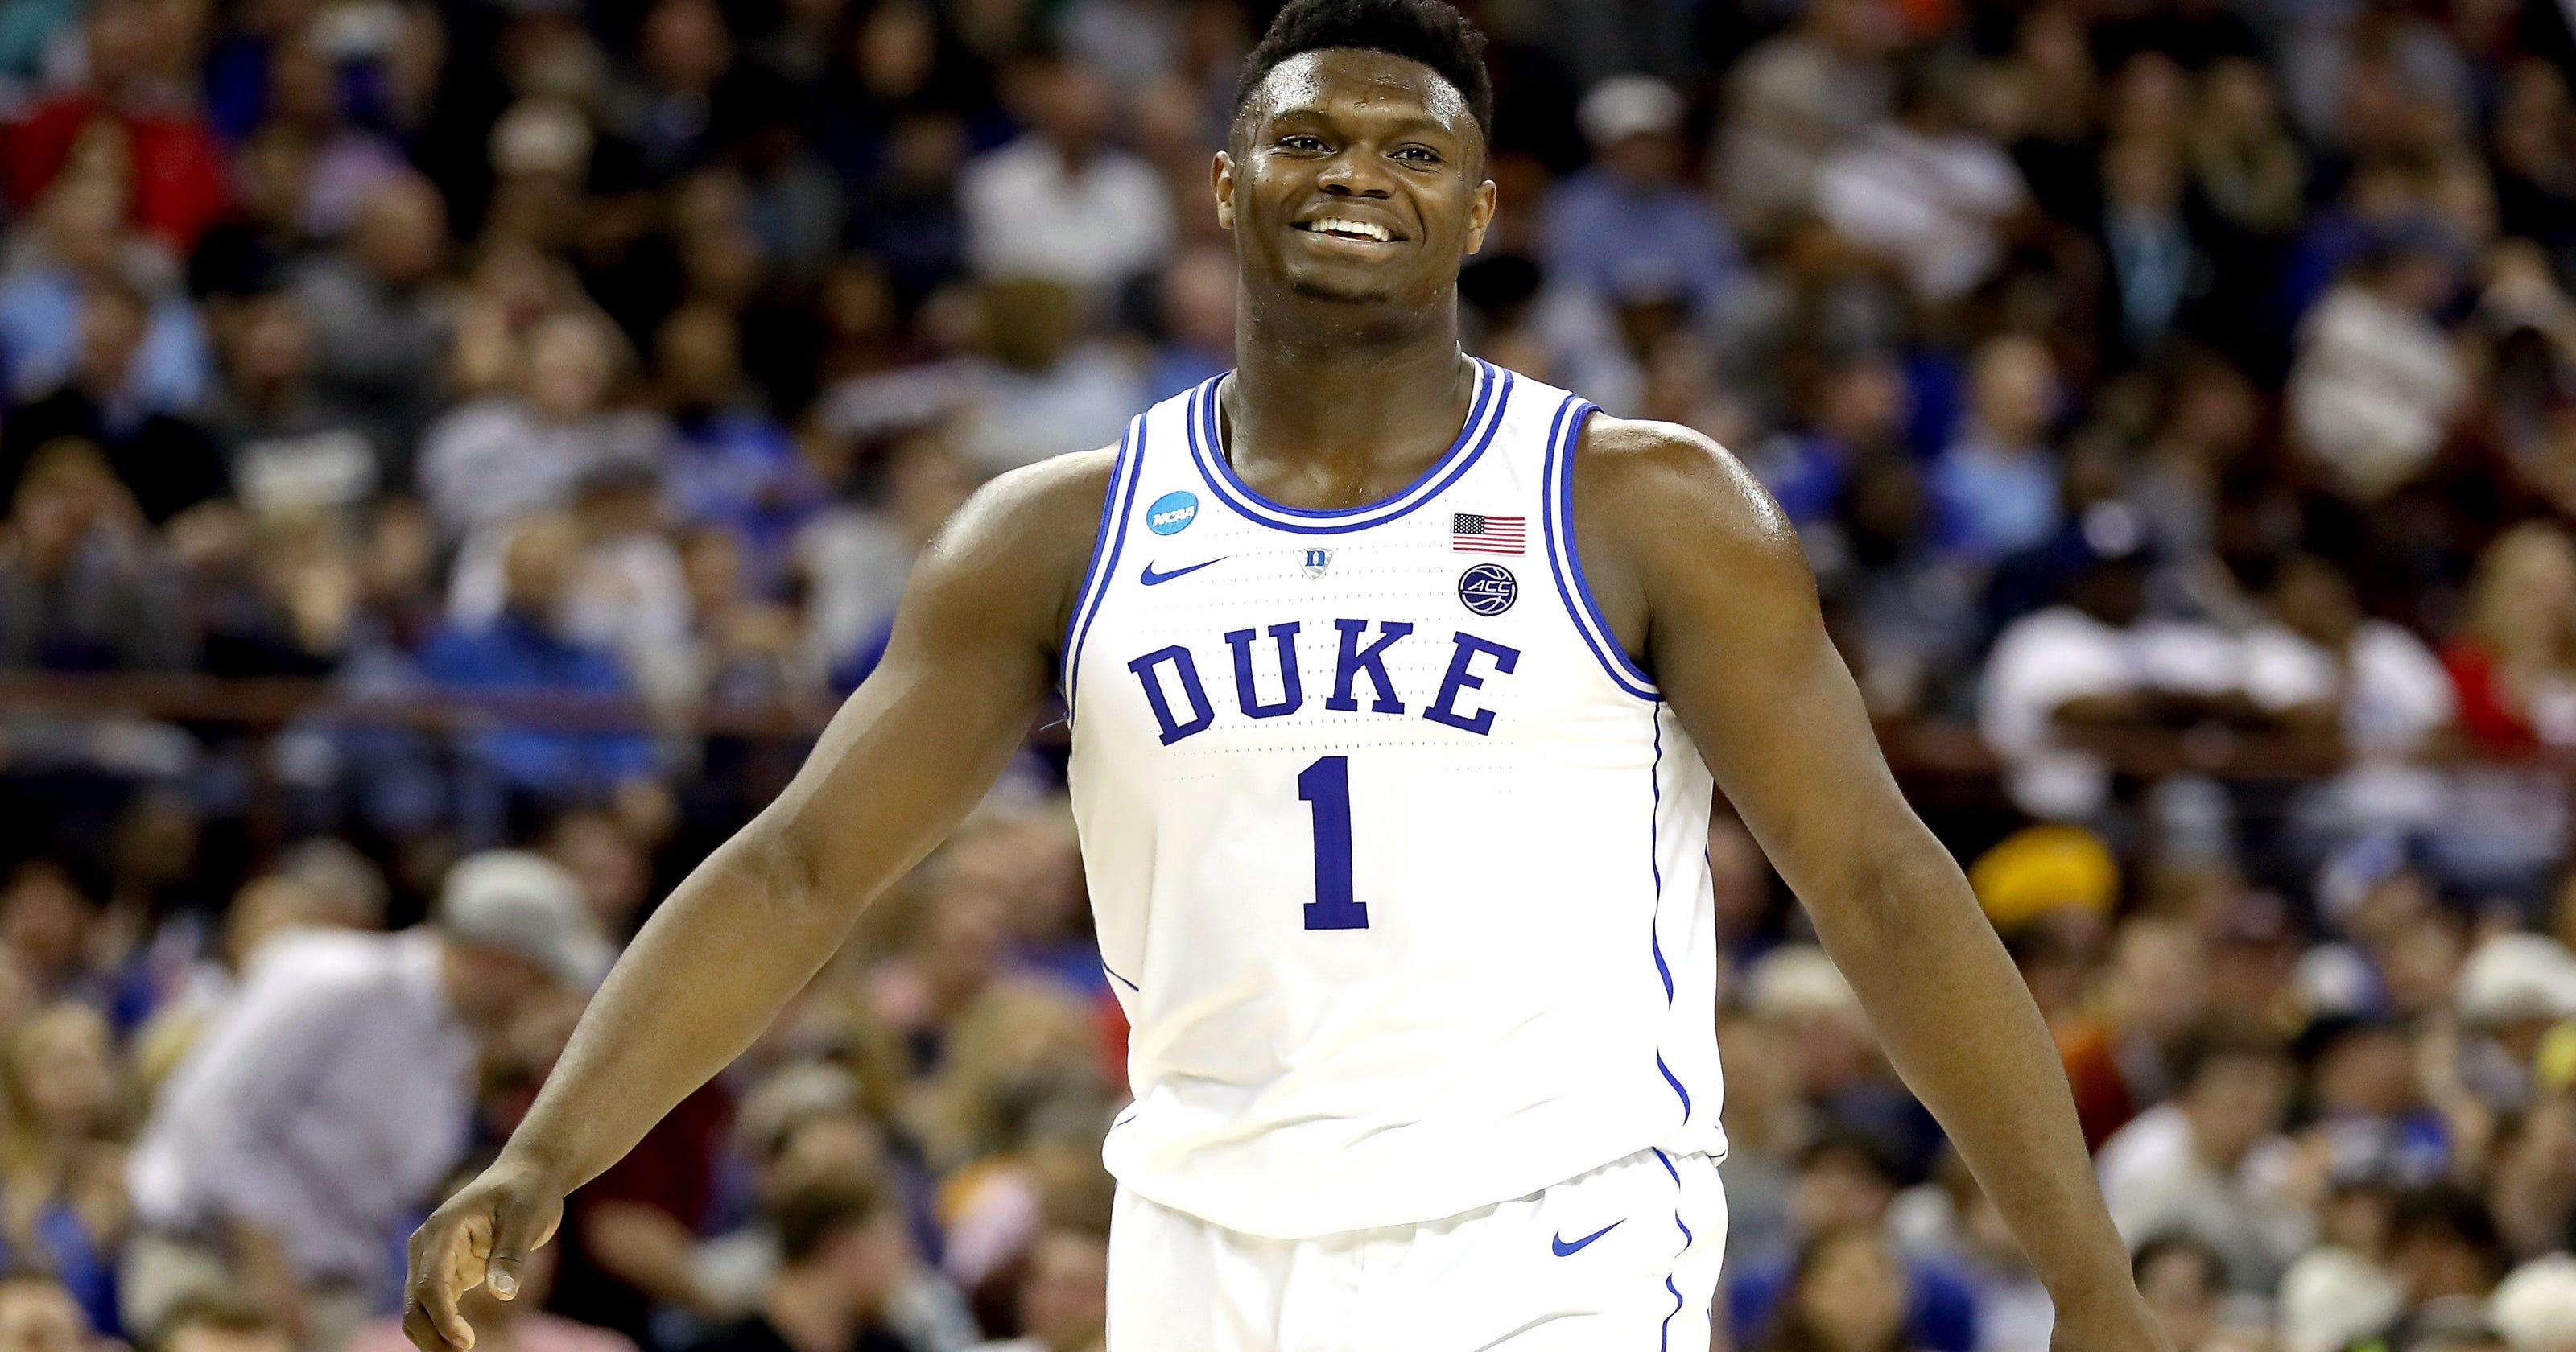 NBA draft lottery: Zion Williamson to the Memphis Grizzlies?